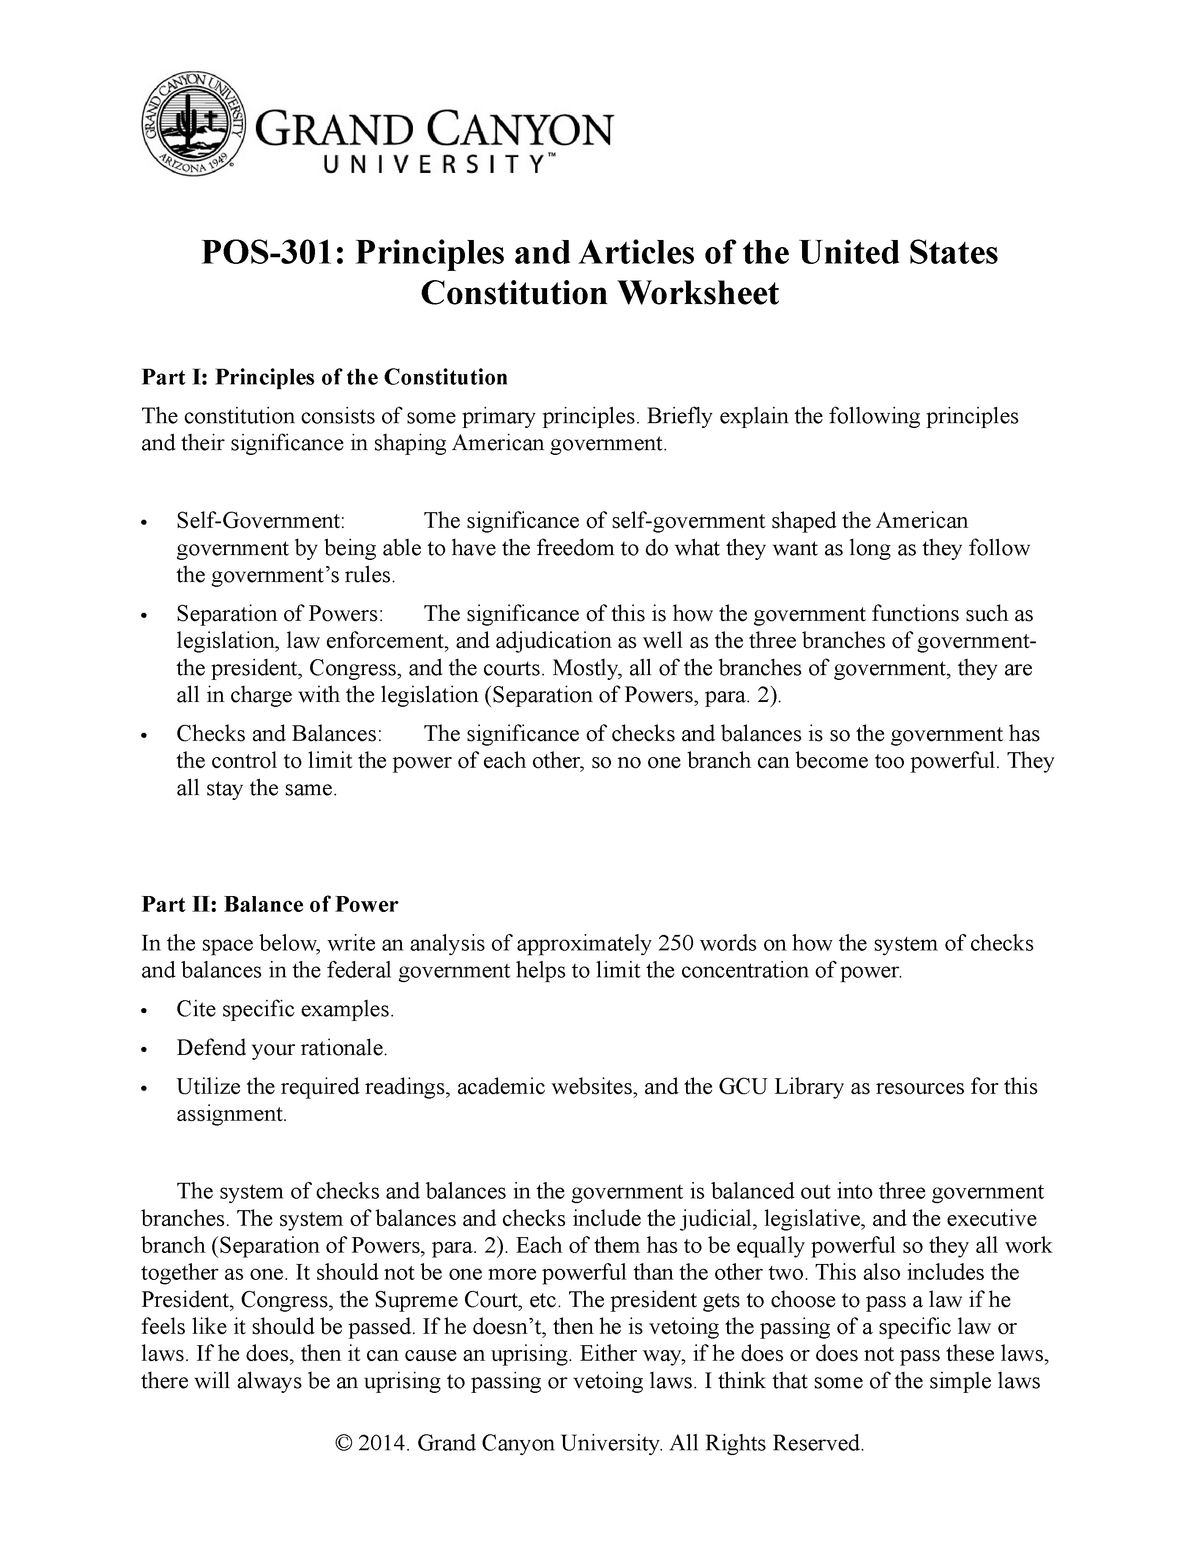 POS301 - Assignment about the government branches. - POS-301 ...